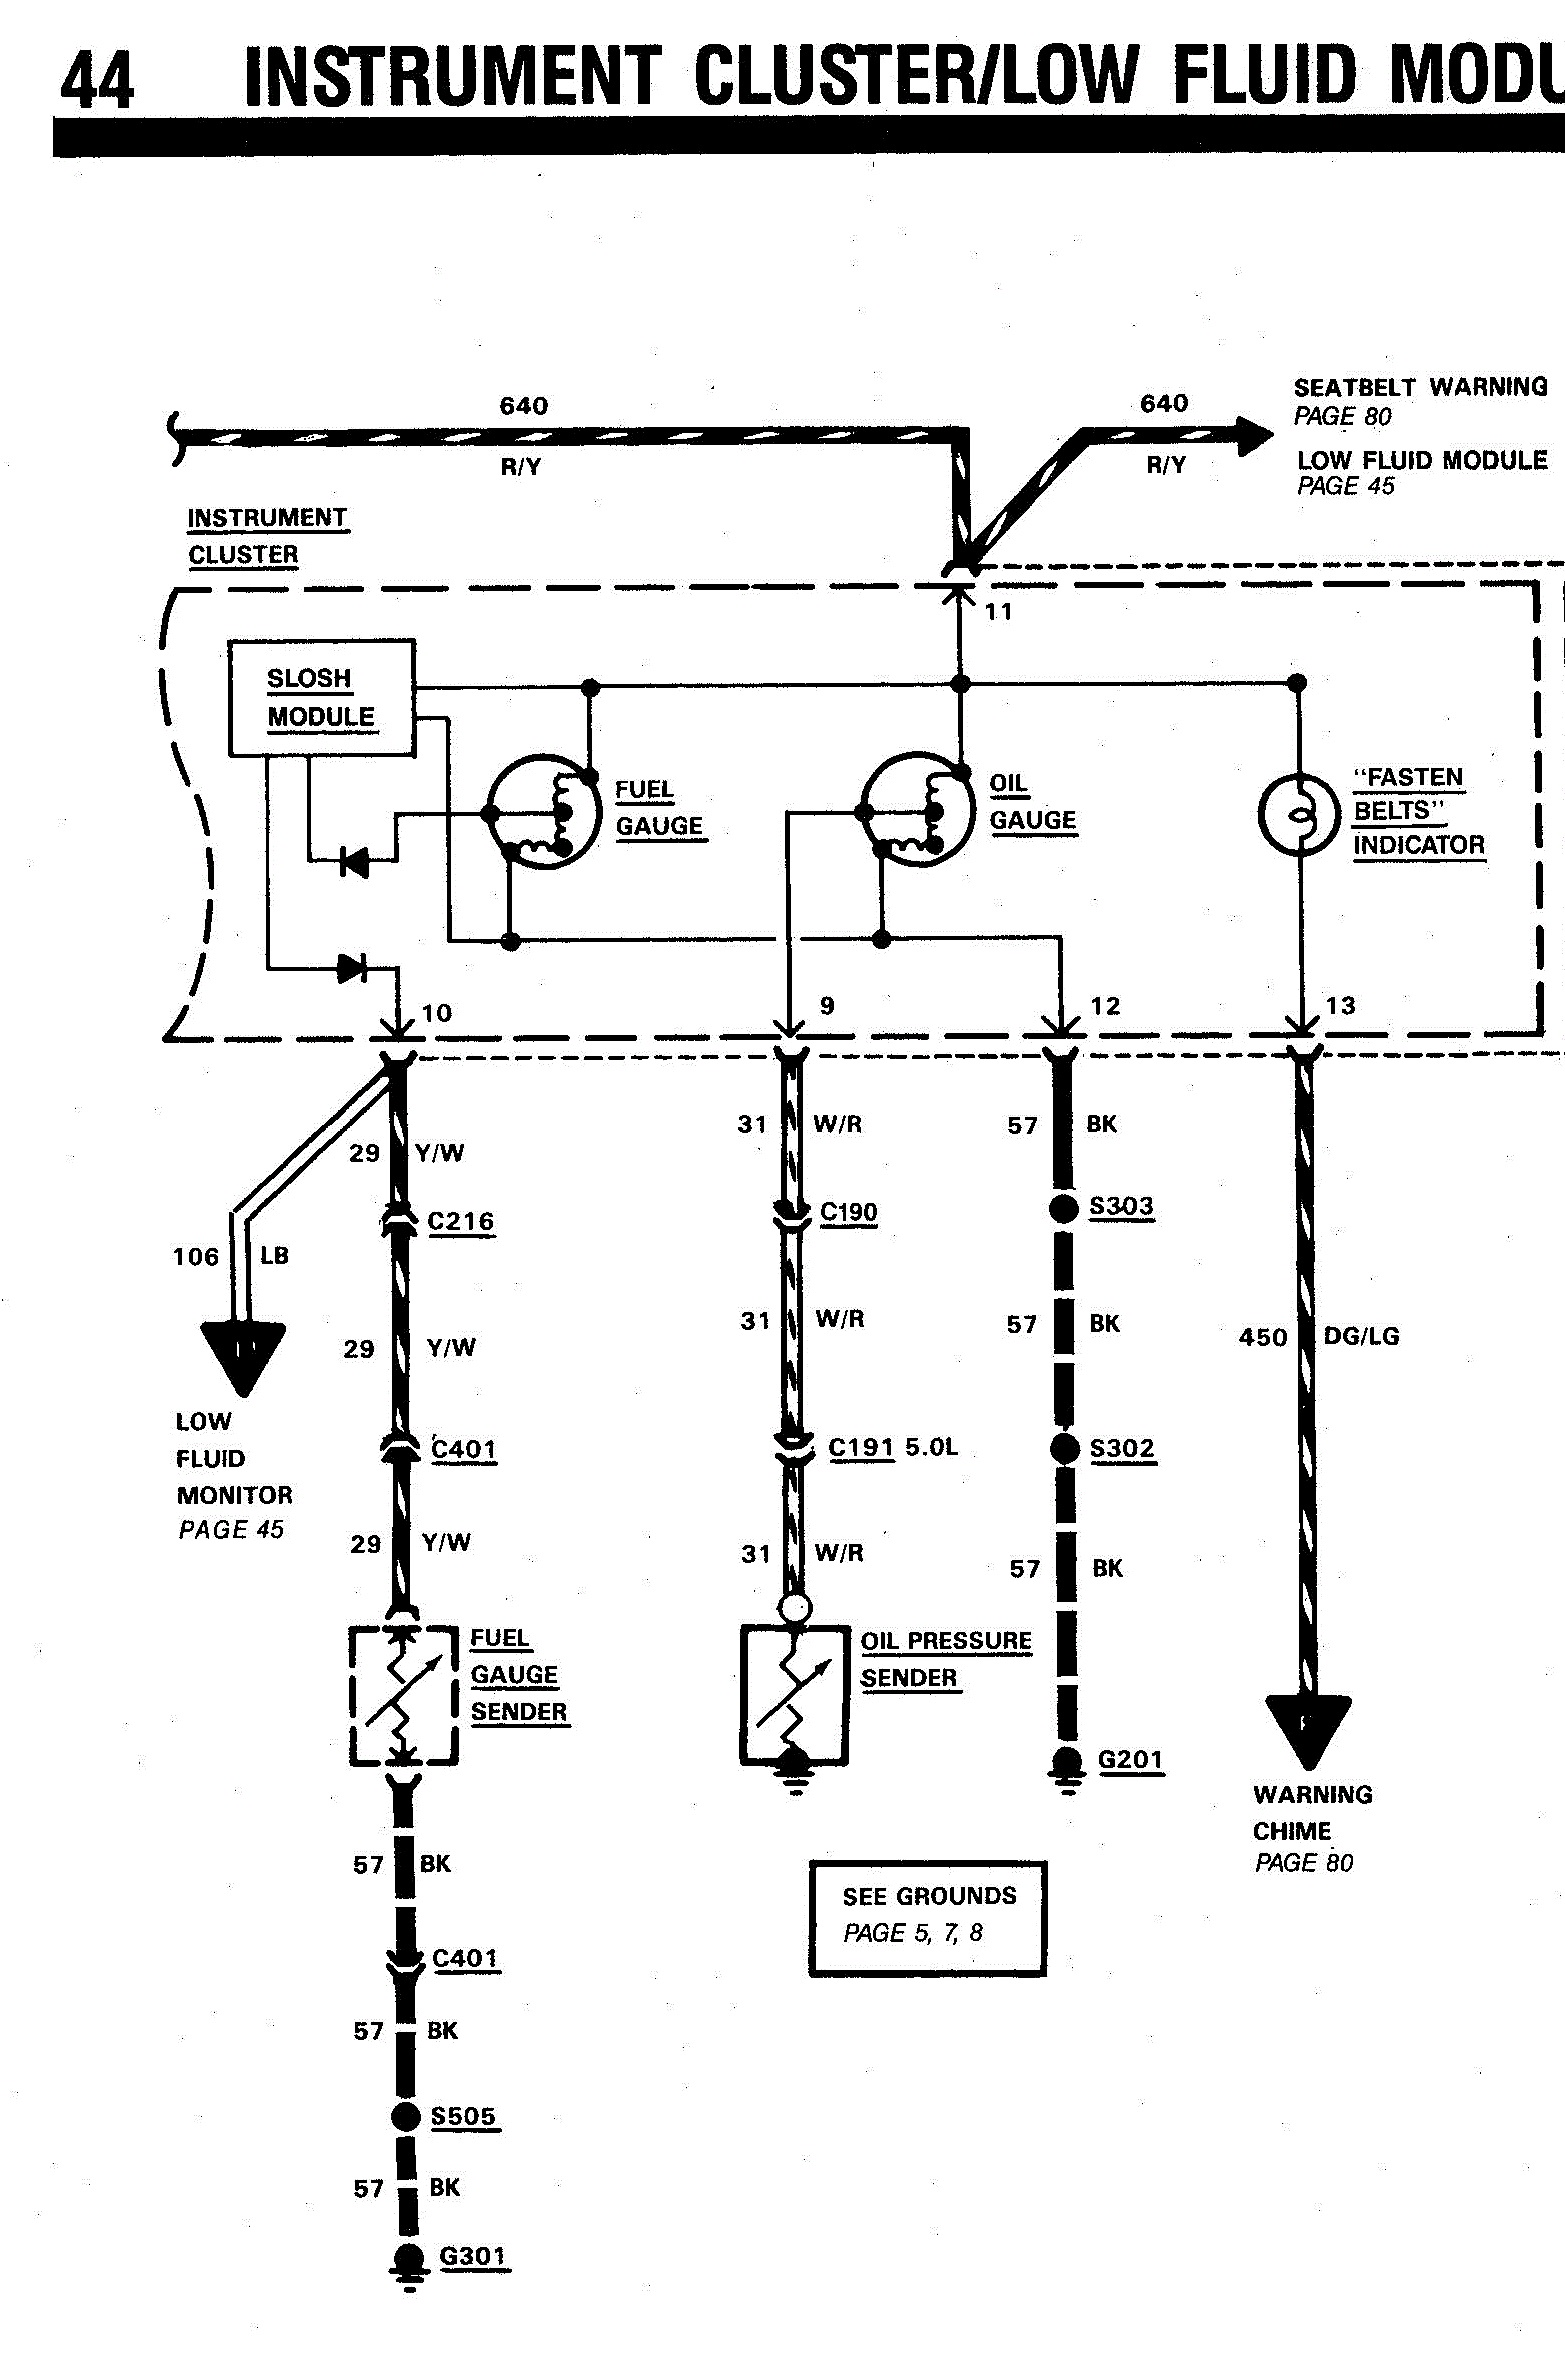 DIAGRAM] Massimo Oil Wiring Diagram FULL Version HD Quality Wiring Diagram  - ELECTROCARDIAGRAM.BELLEILMERSION.FRelectrocardiagram.belleilmersion.fr